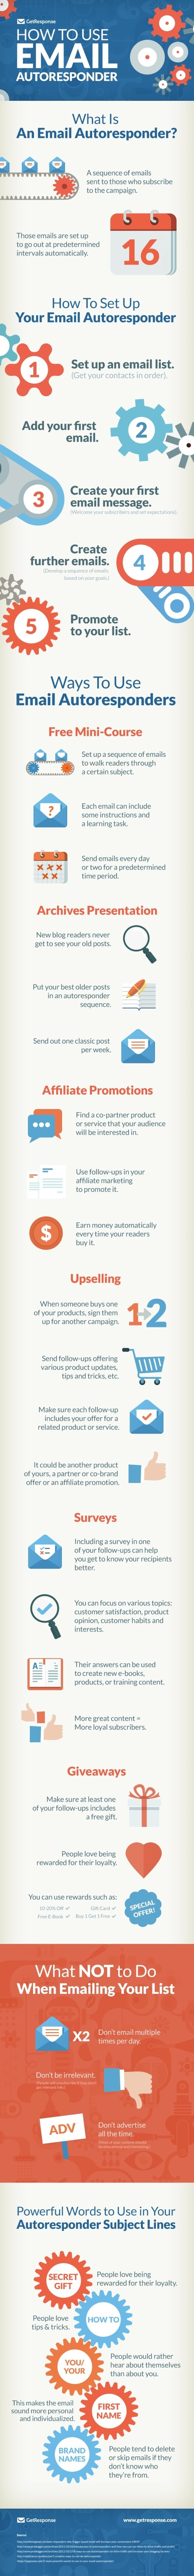 How to Use an Email Autoresponder #Infographic | MarketingHits | Scoop.it